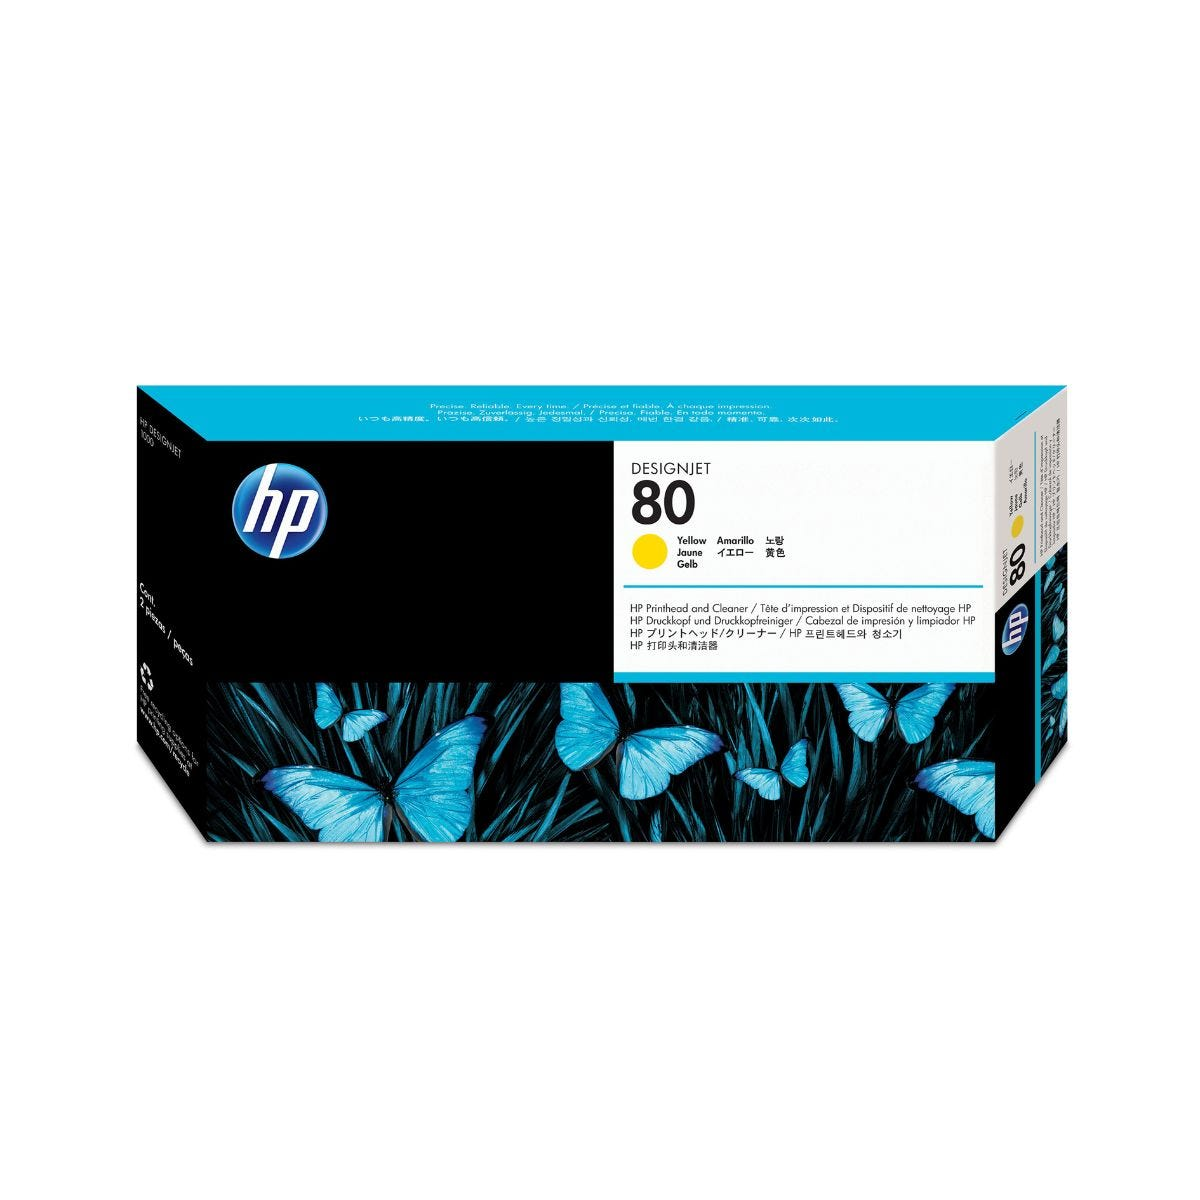 Image of HP 80 Printhead plus Cleaner Ink Yellow, Yellow